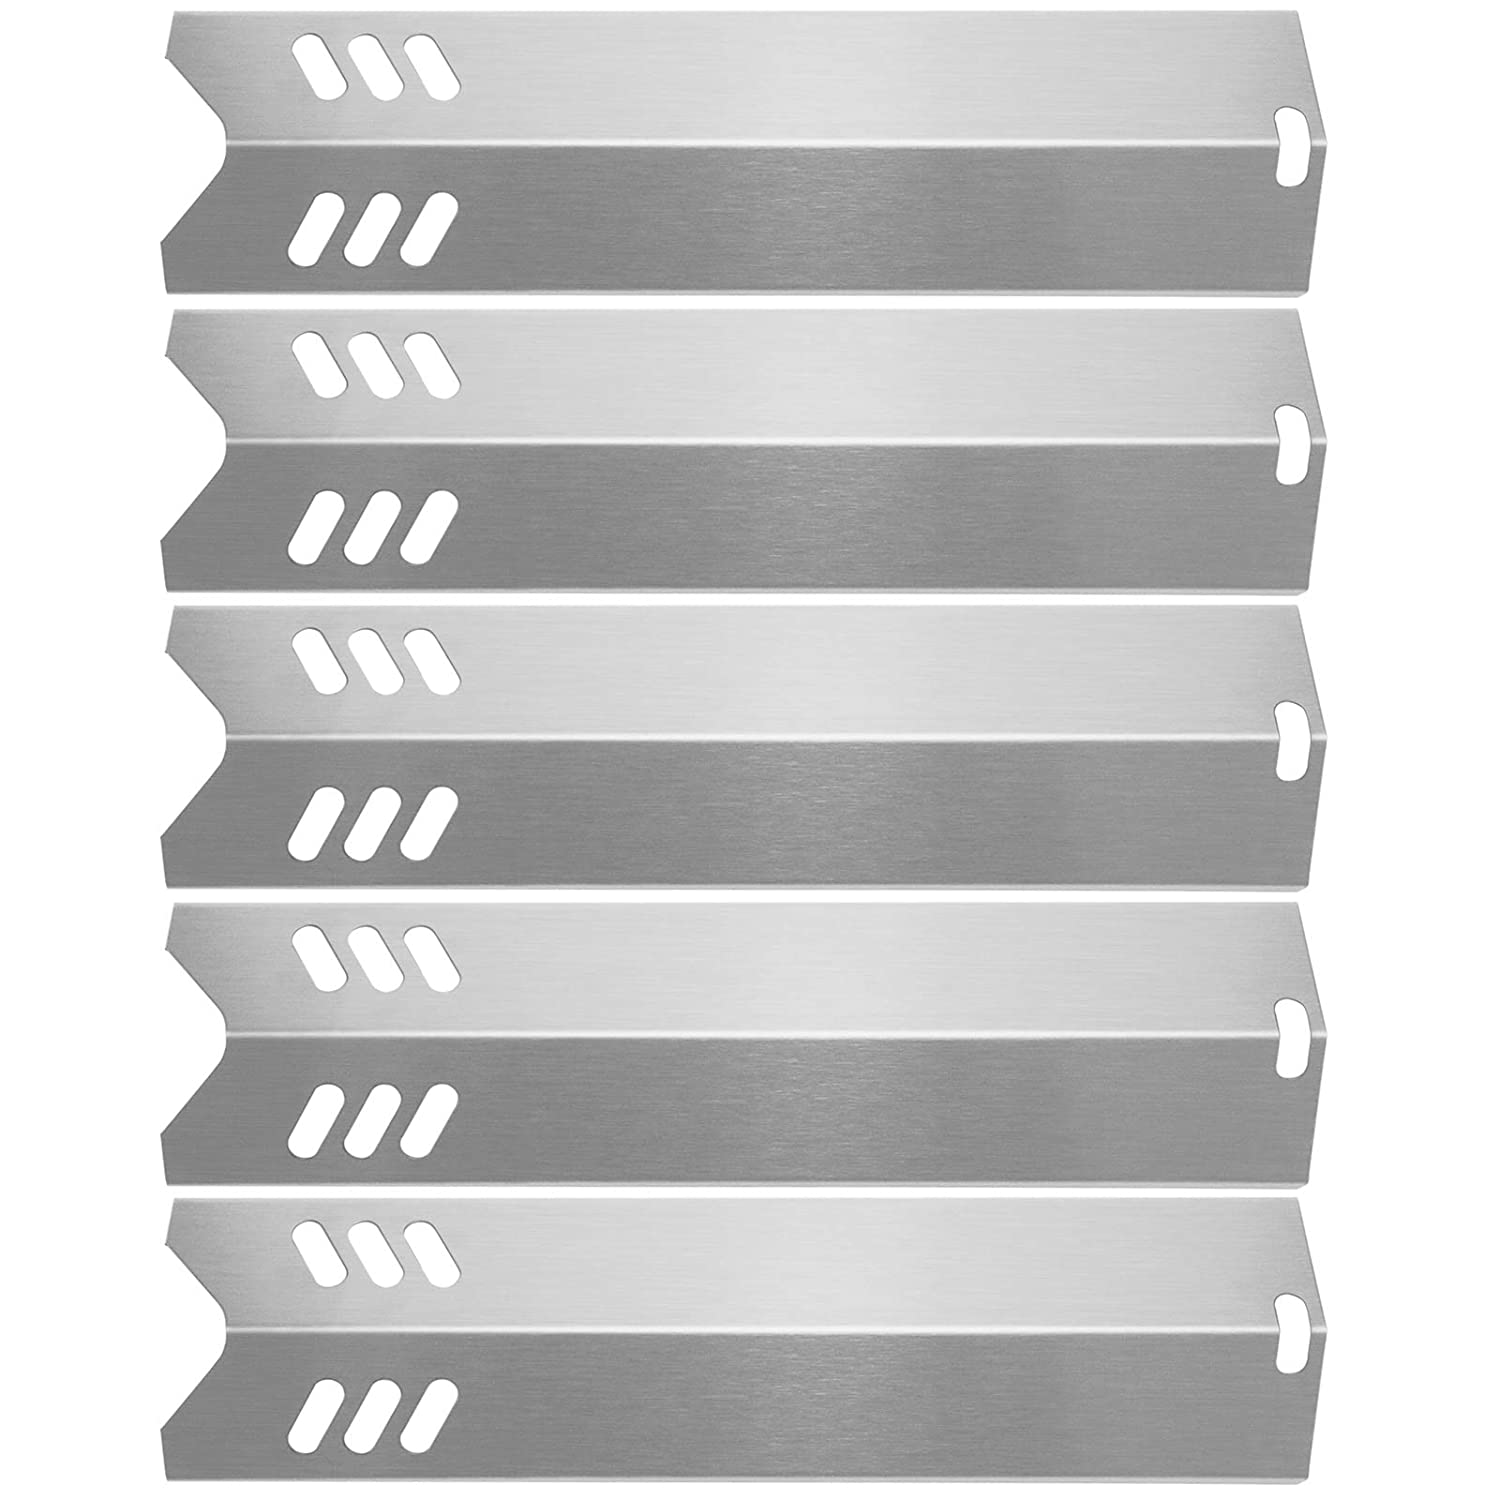 """Hisencn 15"""" Stainless Steel BBQ Gas Grill Heat Plate Shield Tent Replacement for Backyard BY13-101-001-13, BY14-101-001-02, Dyna-Glo DGF510SBP, Uniflame GBC1059WB (5Pack - Stainless Steel)"""